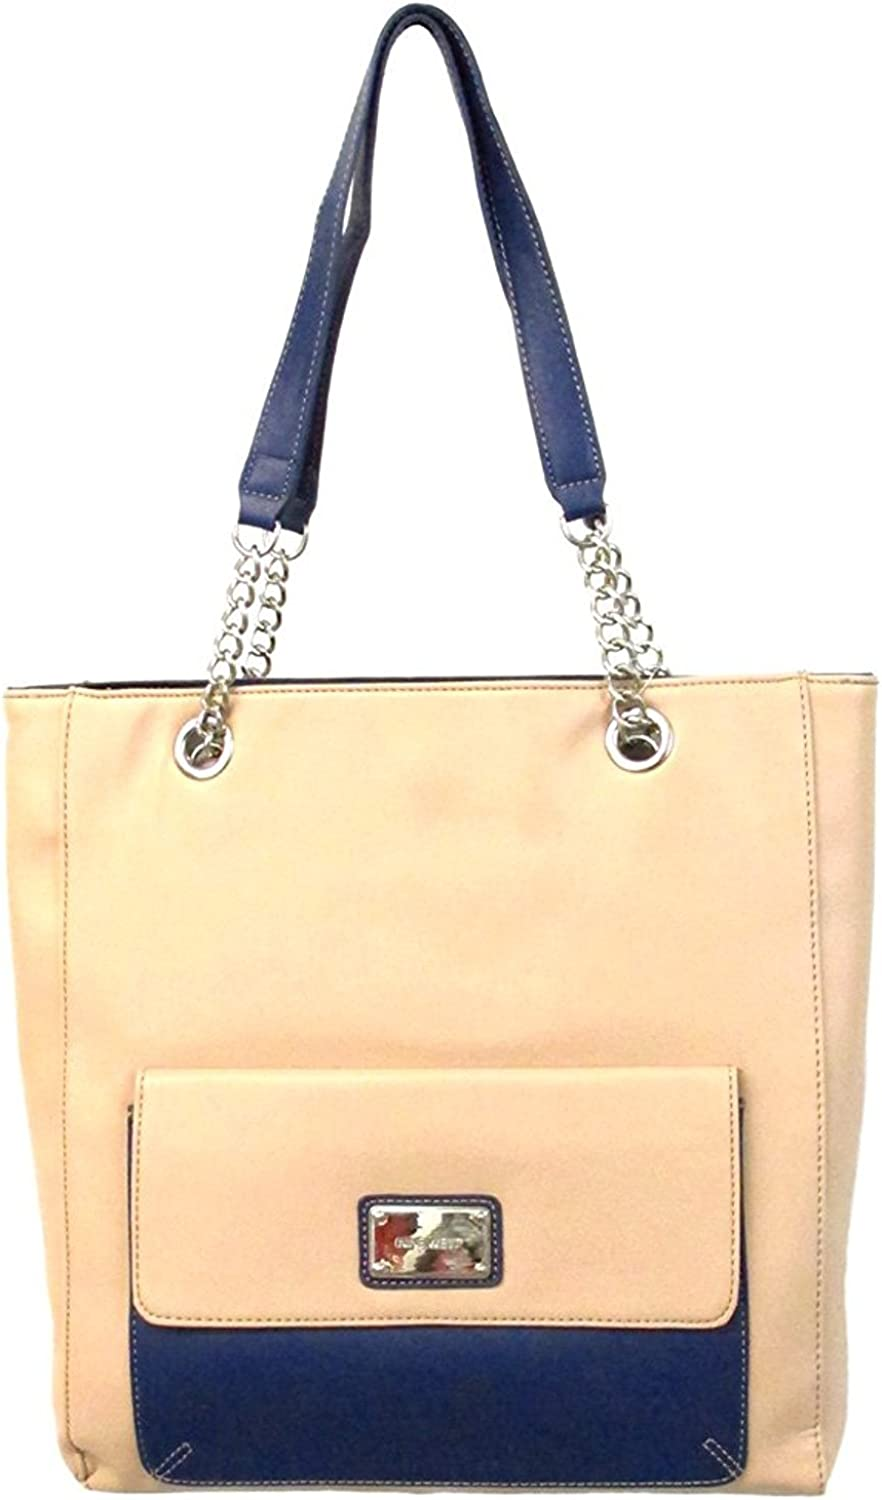 Nine West Envelope Tote